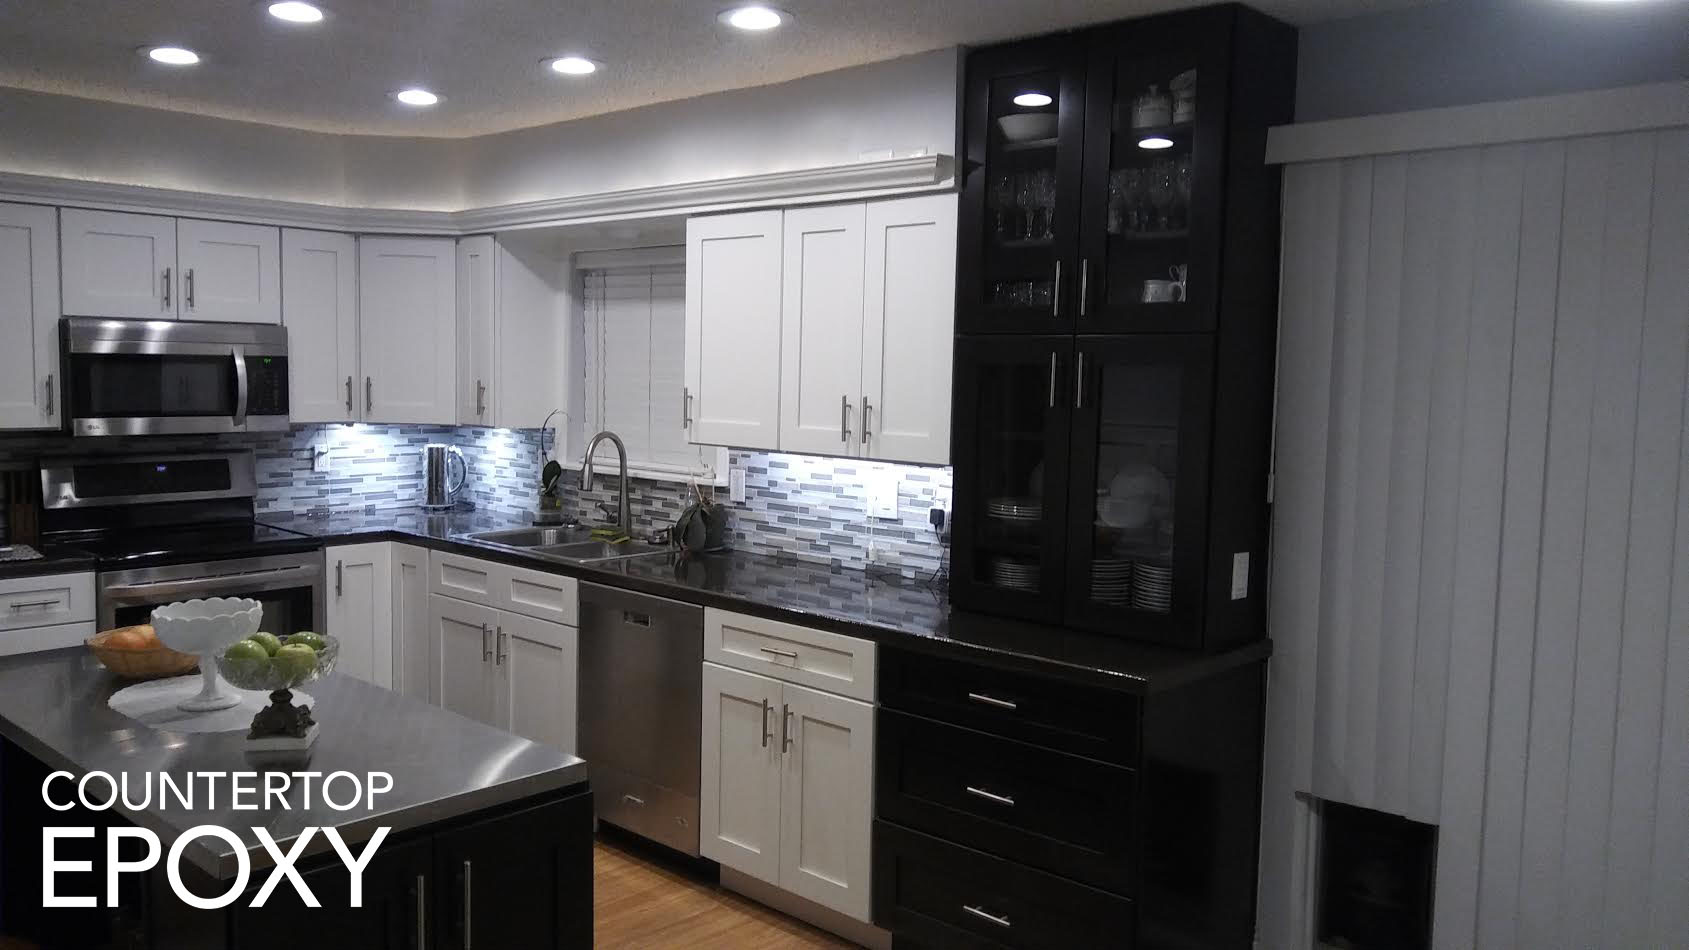 How to Update Your Kitchen Cabinets - Counter Top Epoxy